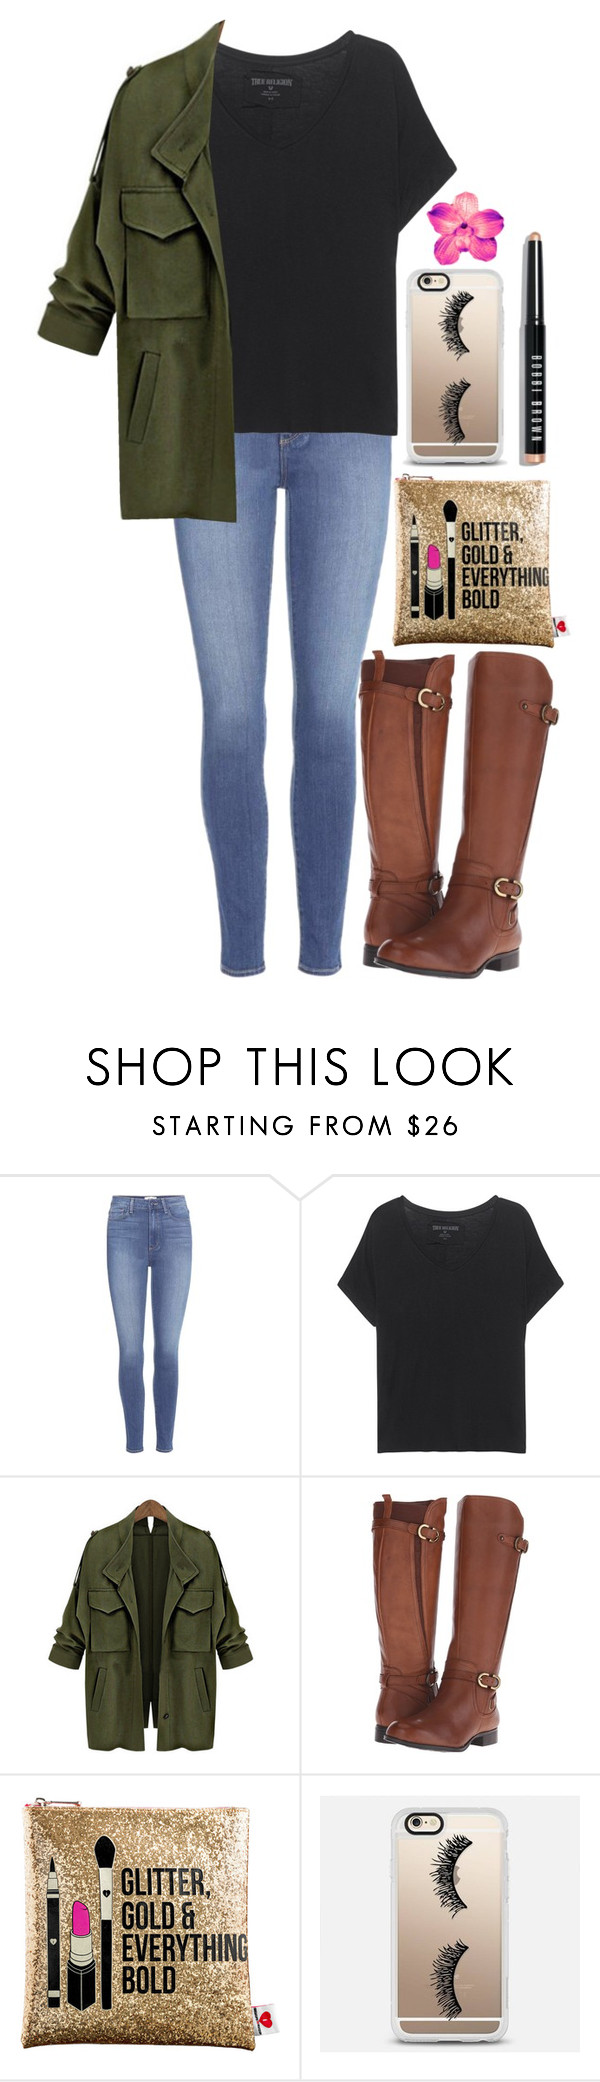 """""""In School &&; OOTD"""" by forevercrazyfashiondivas ❤ liked on Polyvore featuring Paige Denim, True Religion, Naturalizer, Sephora Collection, Casetify, Bobbi Brown Cosmetics and chloerememberthis"""